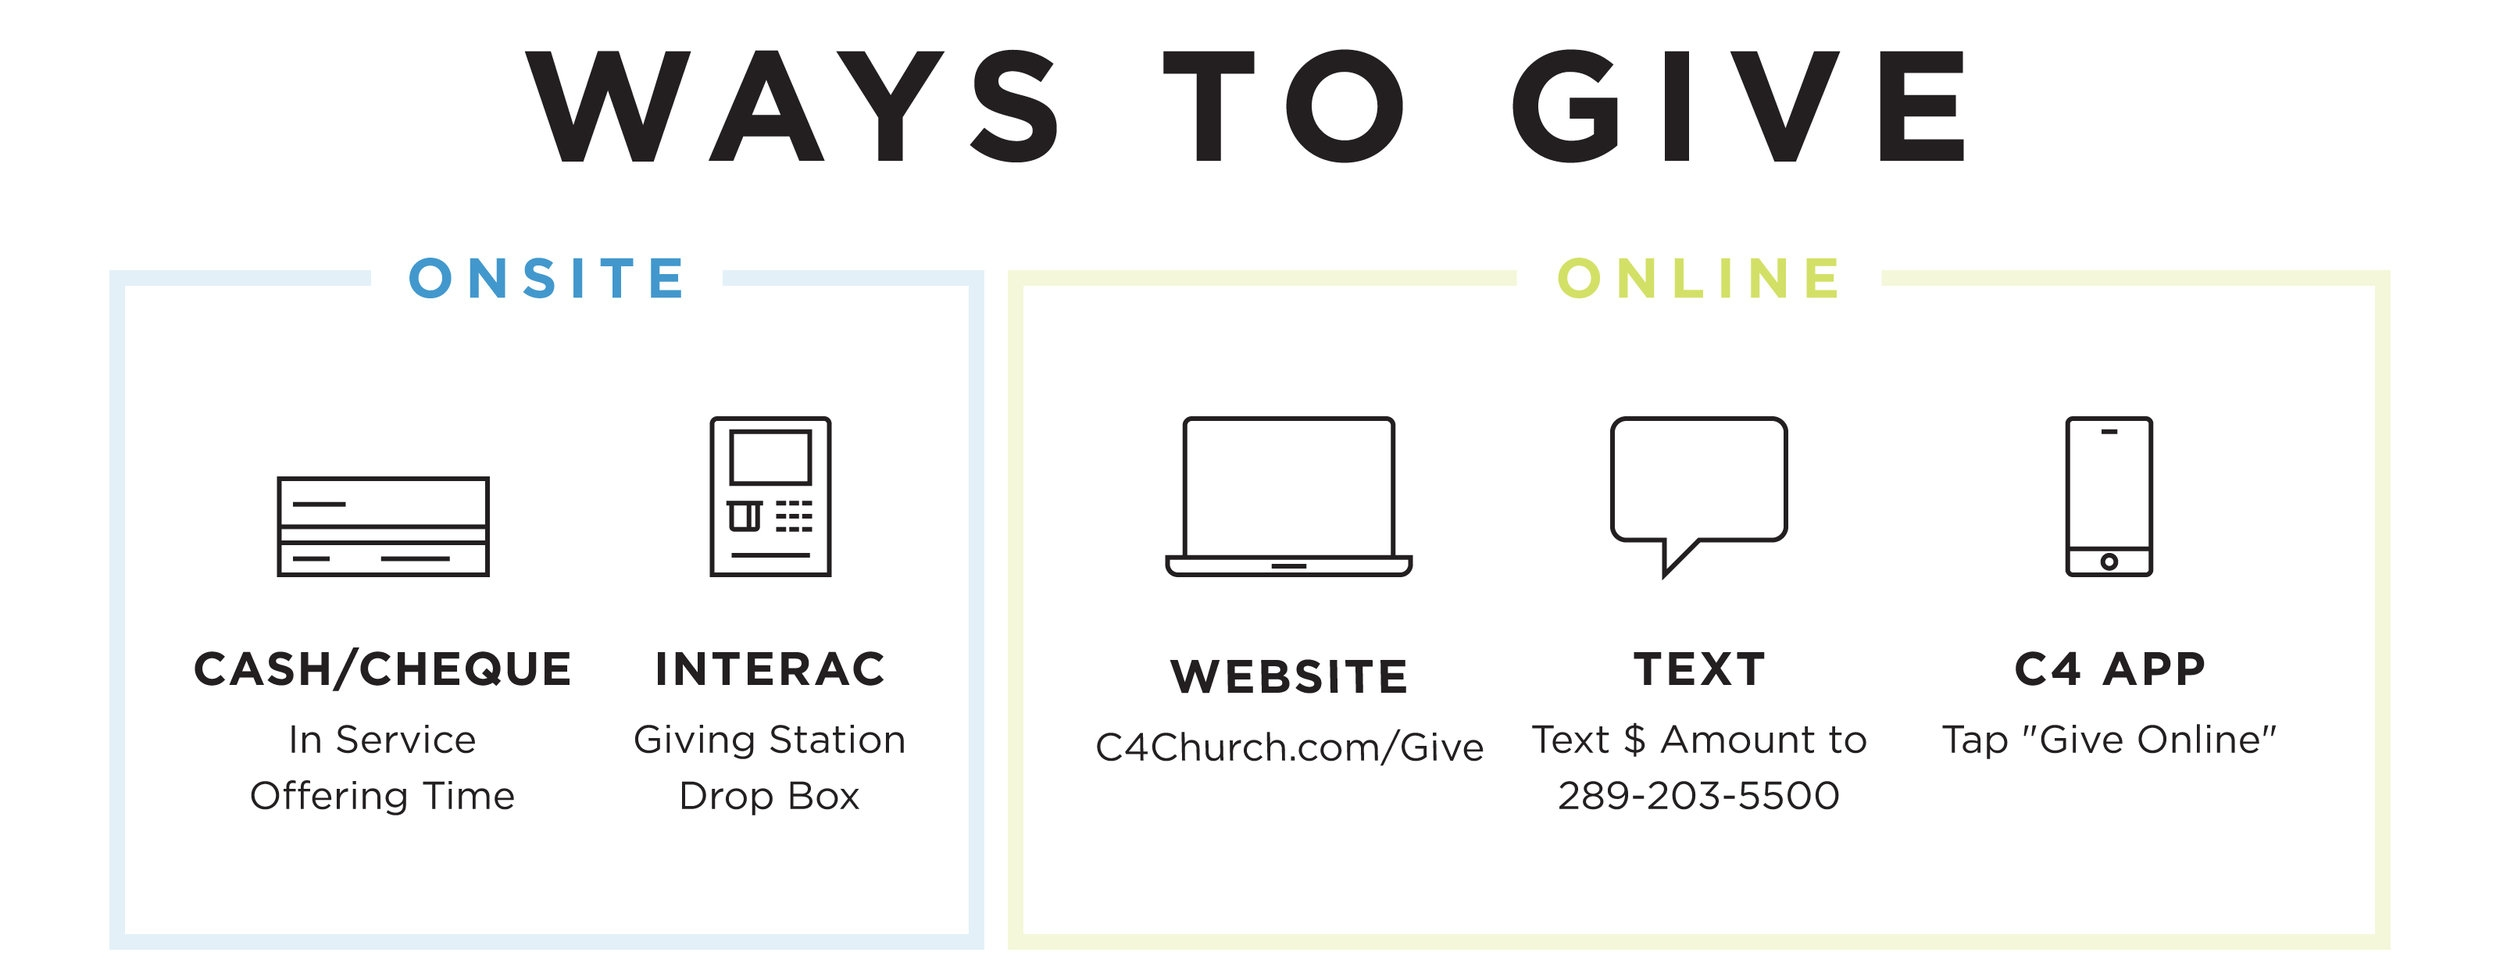 C4-WaysToGive-Screen-v01d.jpg